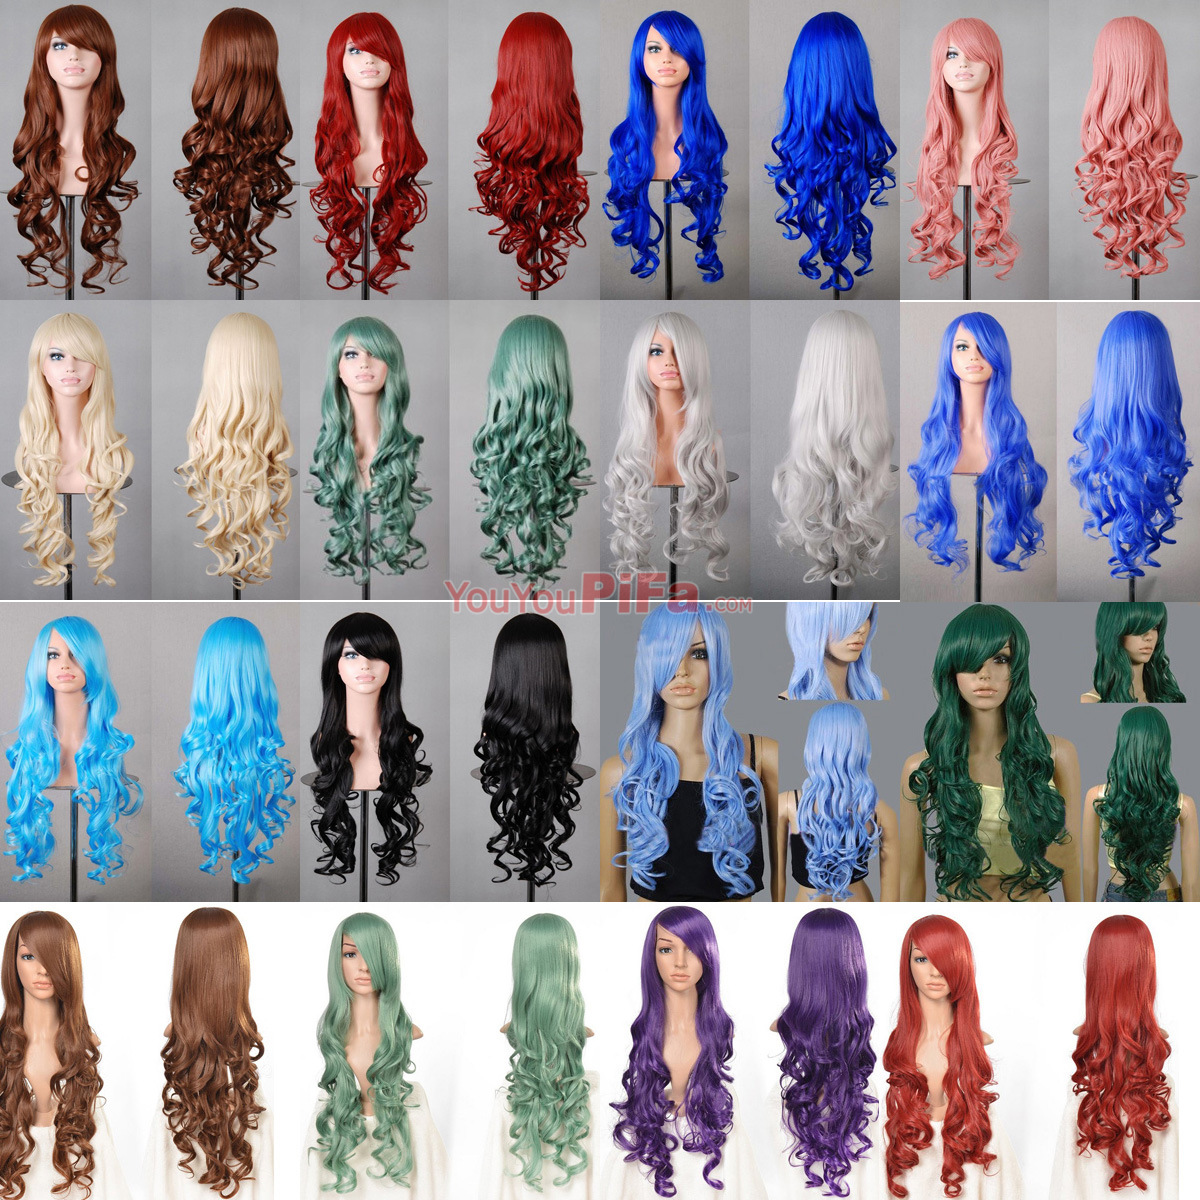 Парик   Anime Cosplay Wig Multicolor 80CM Long Curly Hair 2015 аксессуары для косплея random beauty cosplay